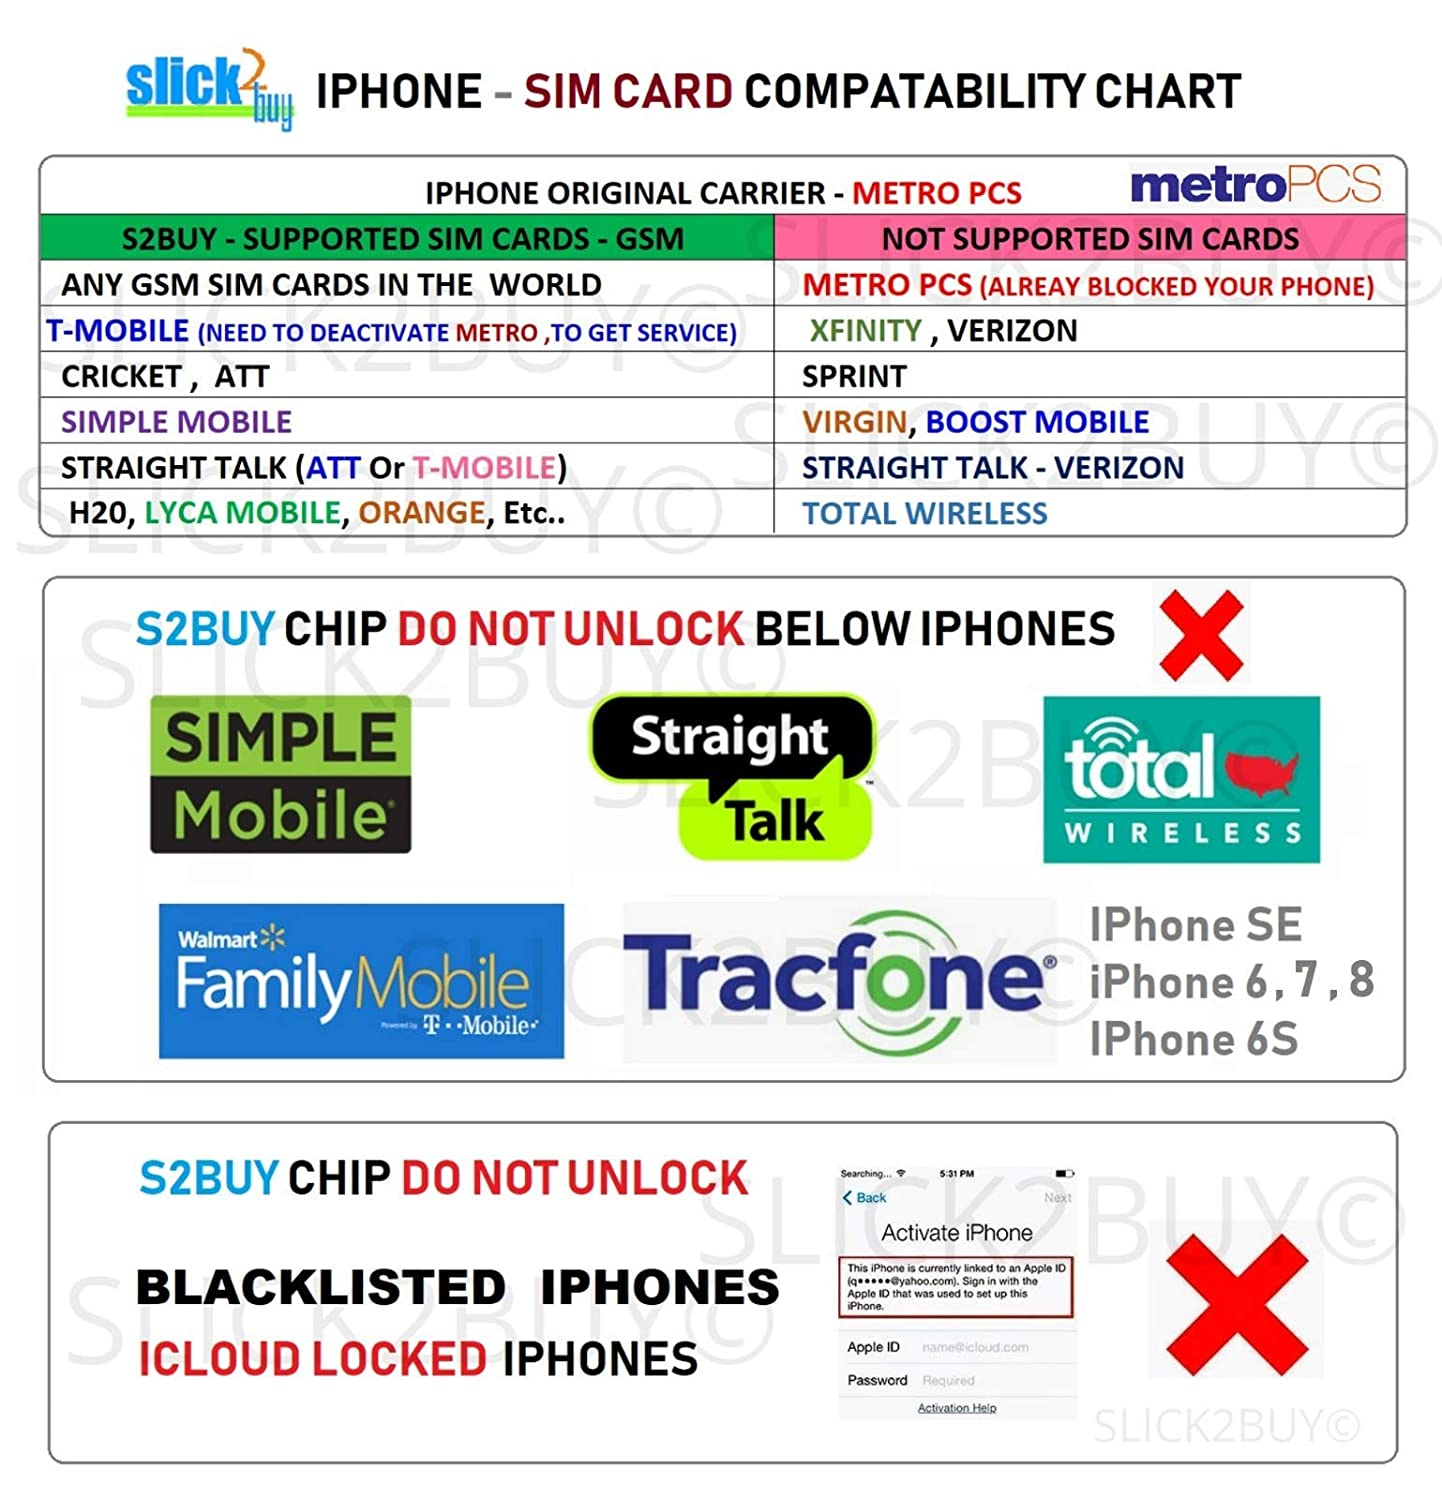 Unlock Any CDMA//GSM iPhones to Any GSM Networks 5s - XS DO NOT Support CDMA SIM Cards S2BUY Premium CHIP AUTO v12.3.x Compatible with iPhone 5s to XS